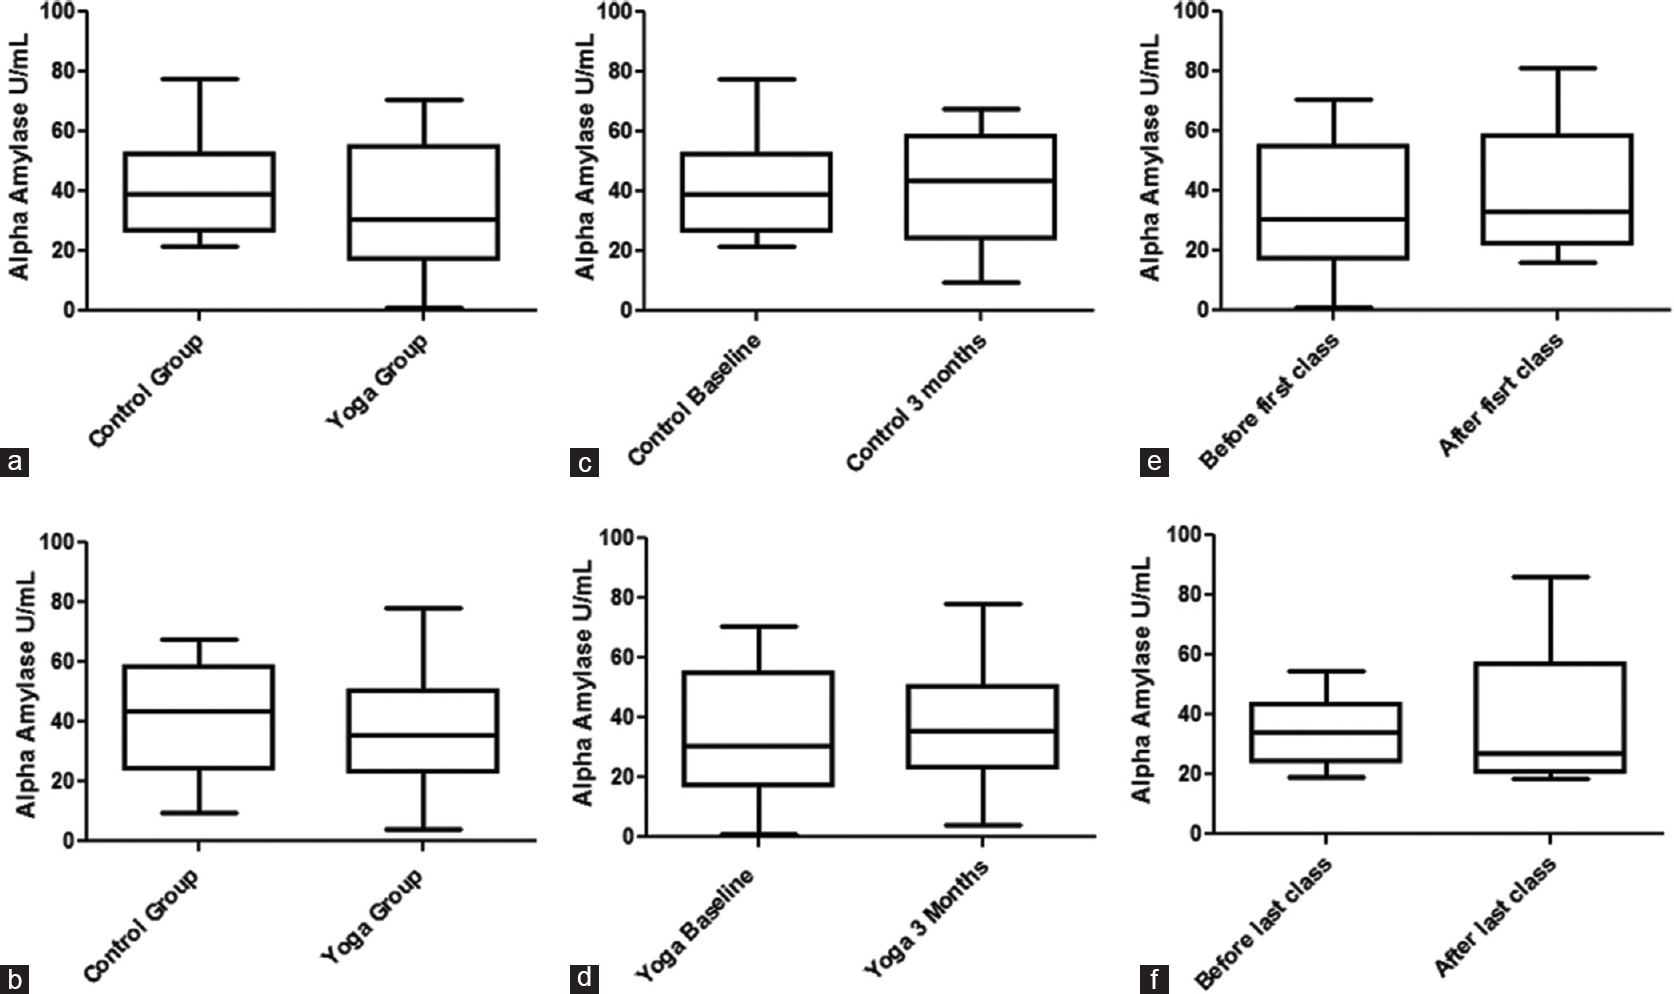 Figure 2: Effect of Kundalini Yoga practice for 3 months in salivary alpha amylase activity. (a) Baseline alpha amylase activity, (b) postintervention alpha amylase activity, (c) longitudinal effect in control group, (d) longitudinal effect in yoga group, (e) baseline immediate effect (f) postintervention immediate effect